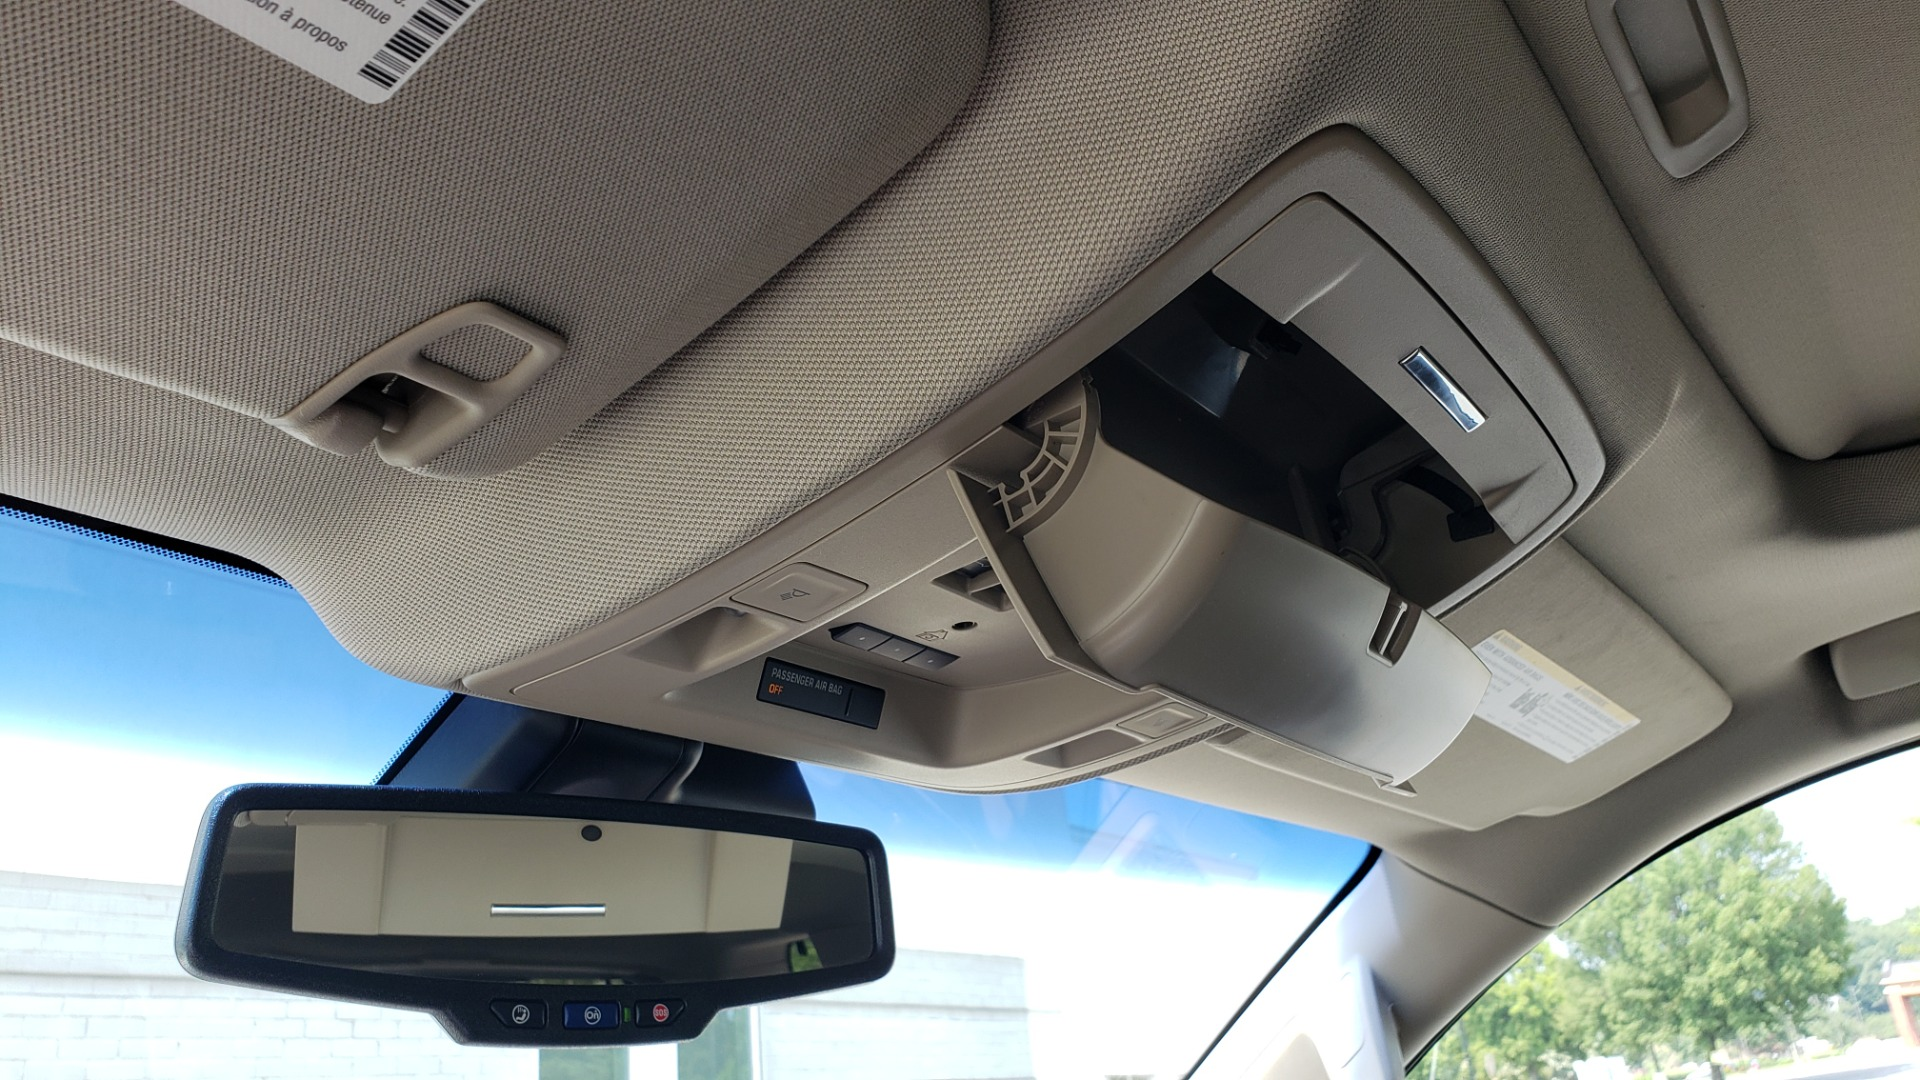 Used 2018 Chevrolet TAHOE PREMIER 4WD / NAV / SUNROOF / BOSE / 3-ROW / HUD / REARVIEW for sale $63,995 at Formula Imports in Charlotte NC 28227 59